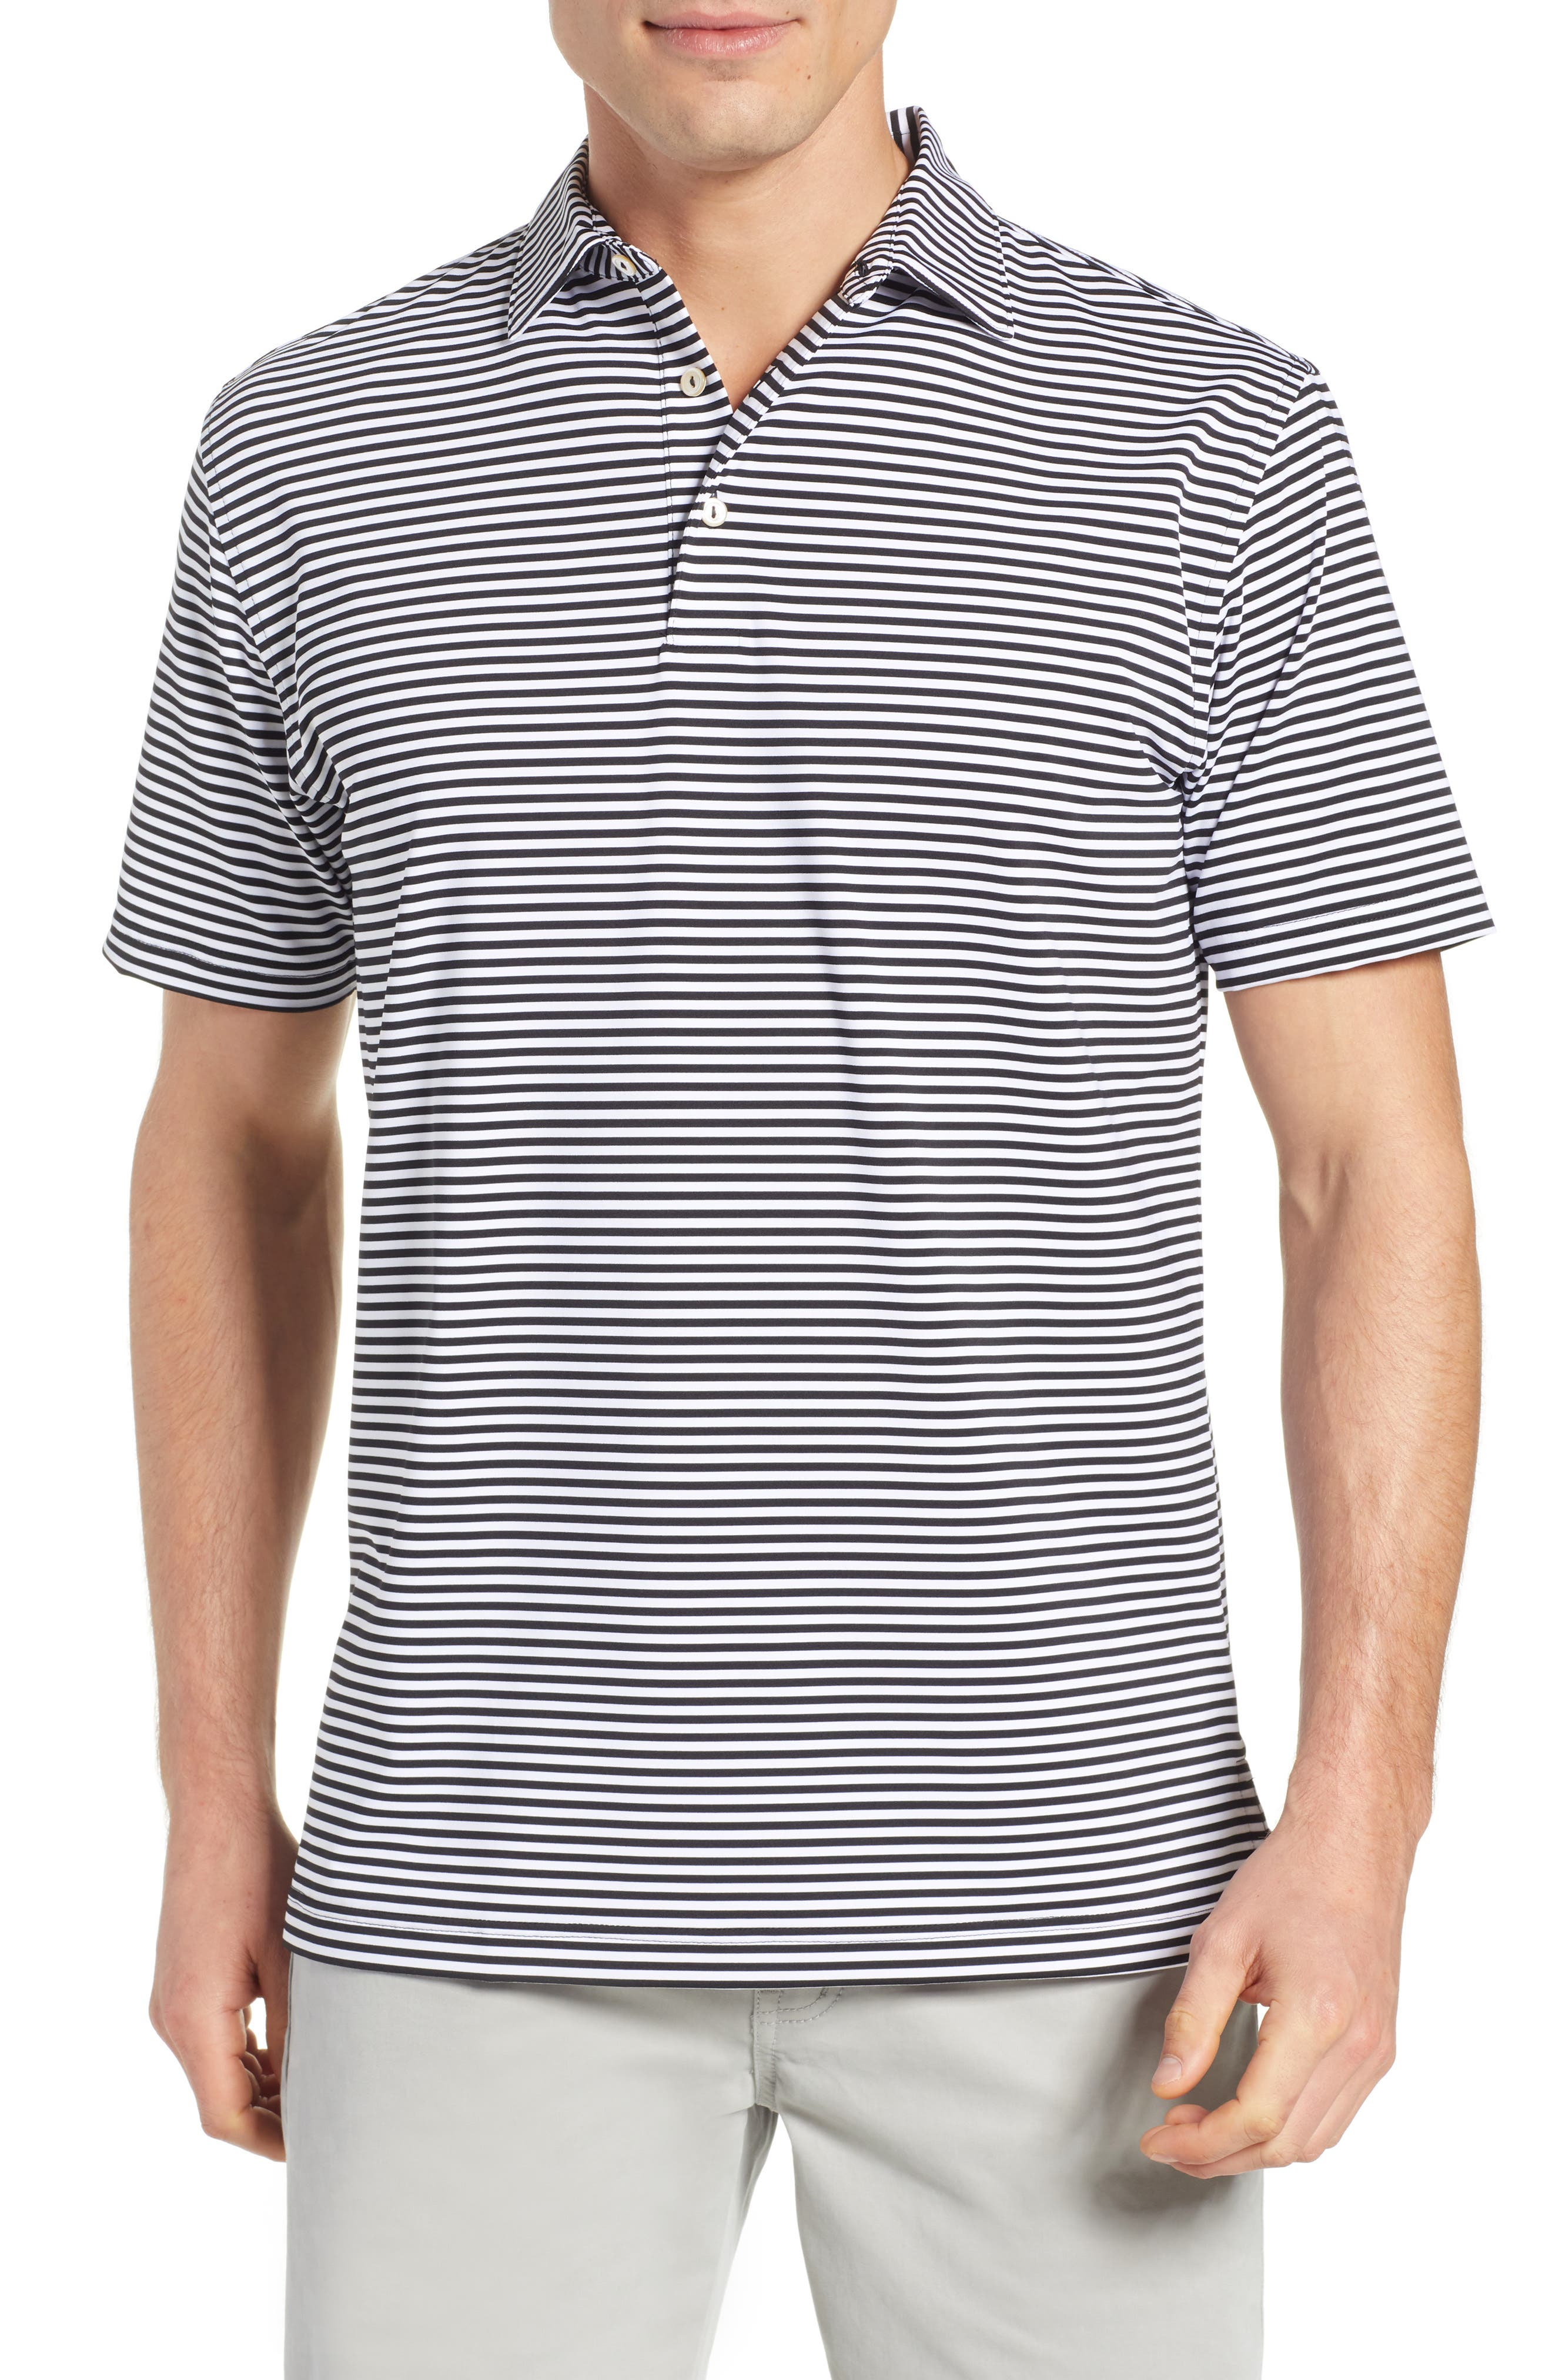 PETER MILLAR Stripe Stretch Jersey Performance Polo, Main, color, BLACK/WHITE